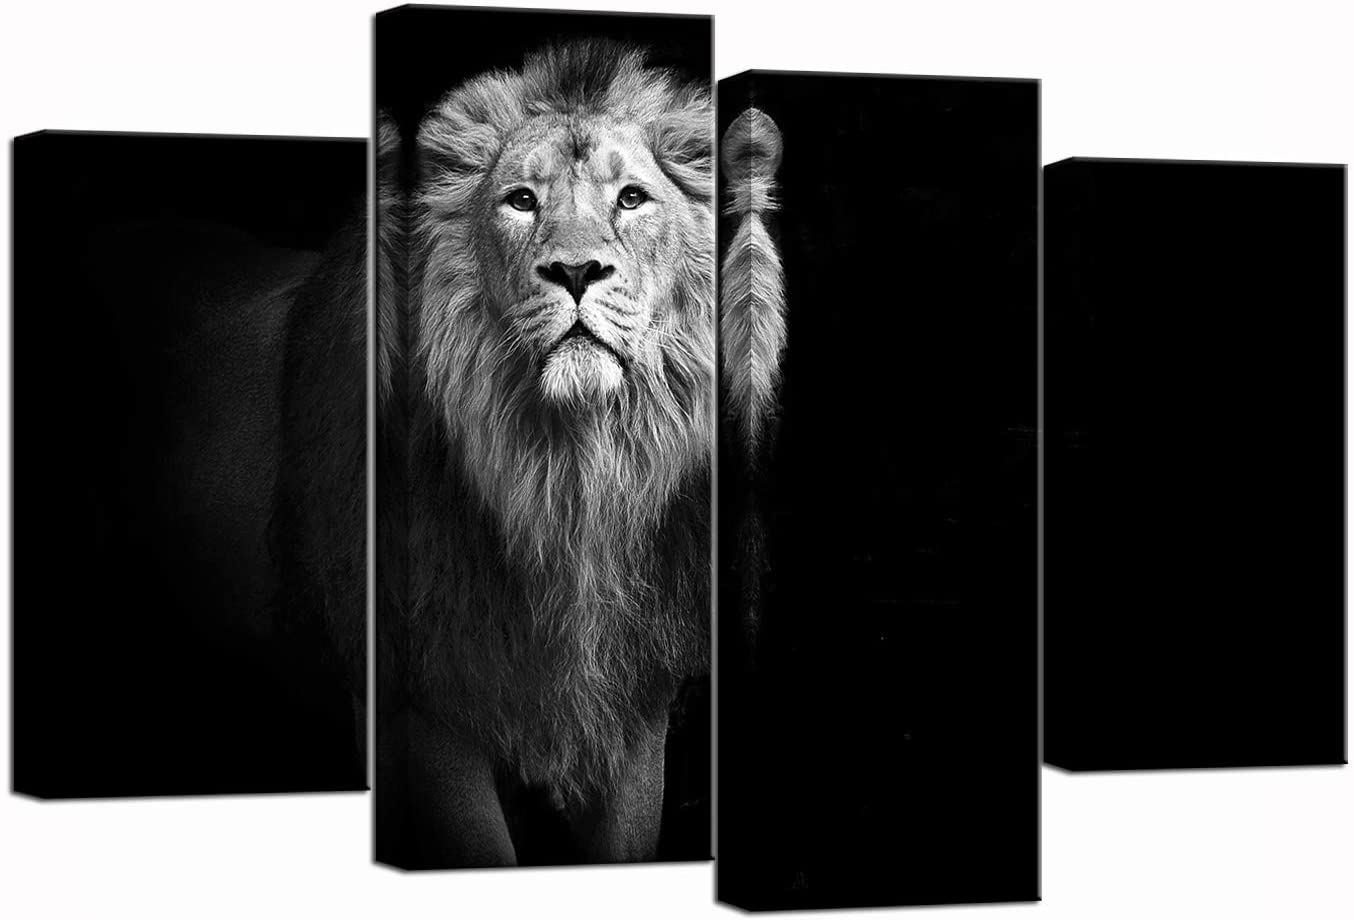 Nachic Wall 4 Piece Canvas Wall Art Black and White Lion Picture Painting Animal Canvas Print for Home Office Man Room Decor Framed Ready to Hang